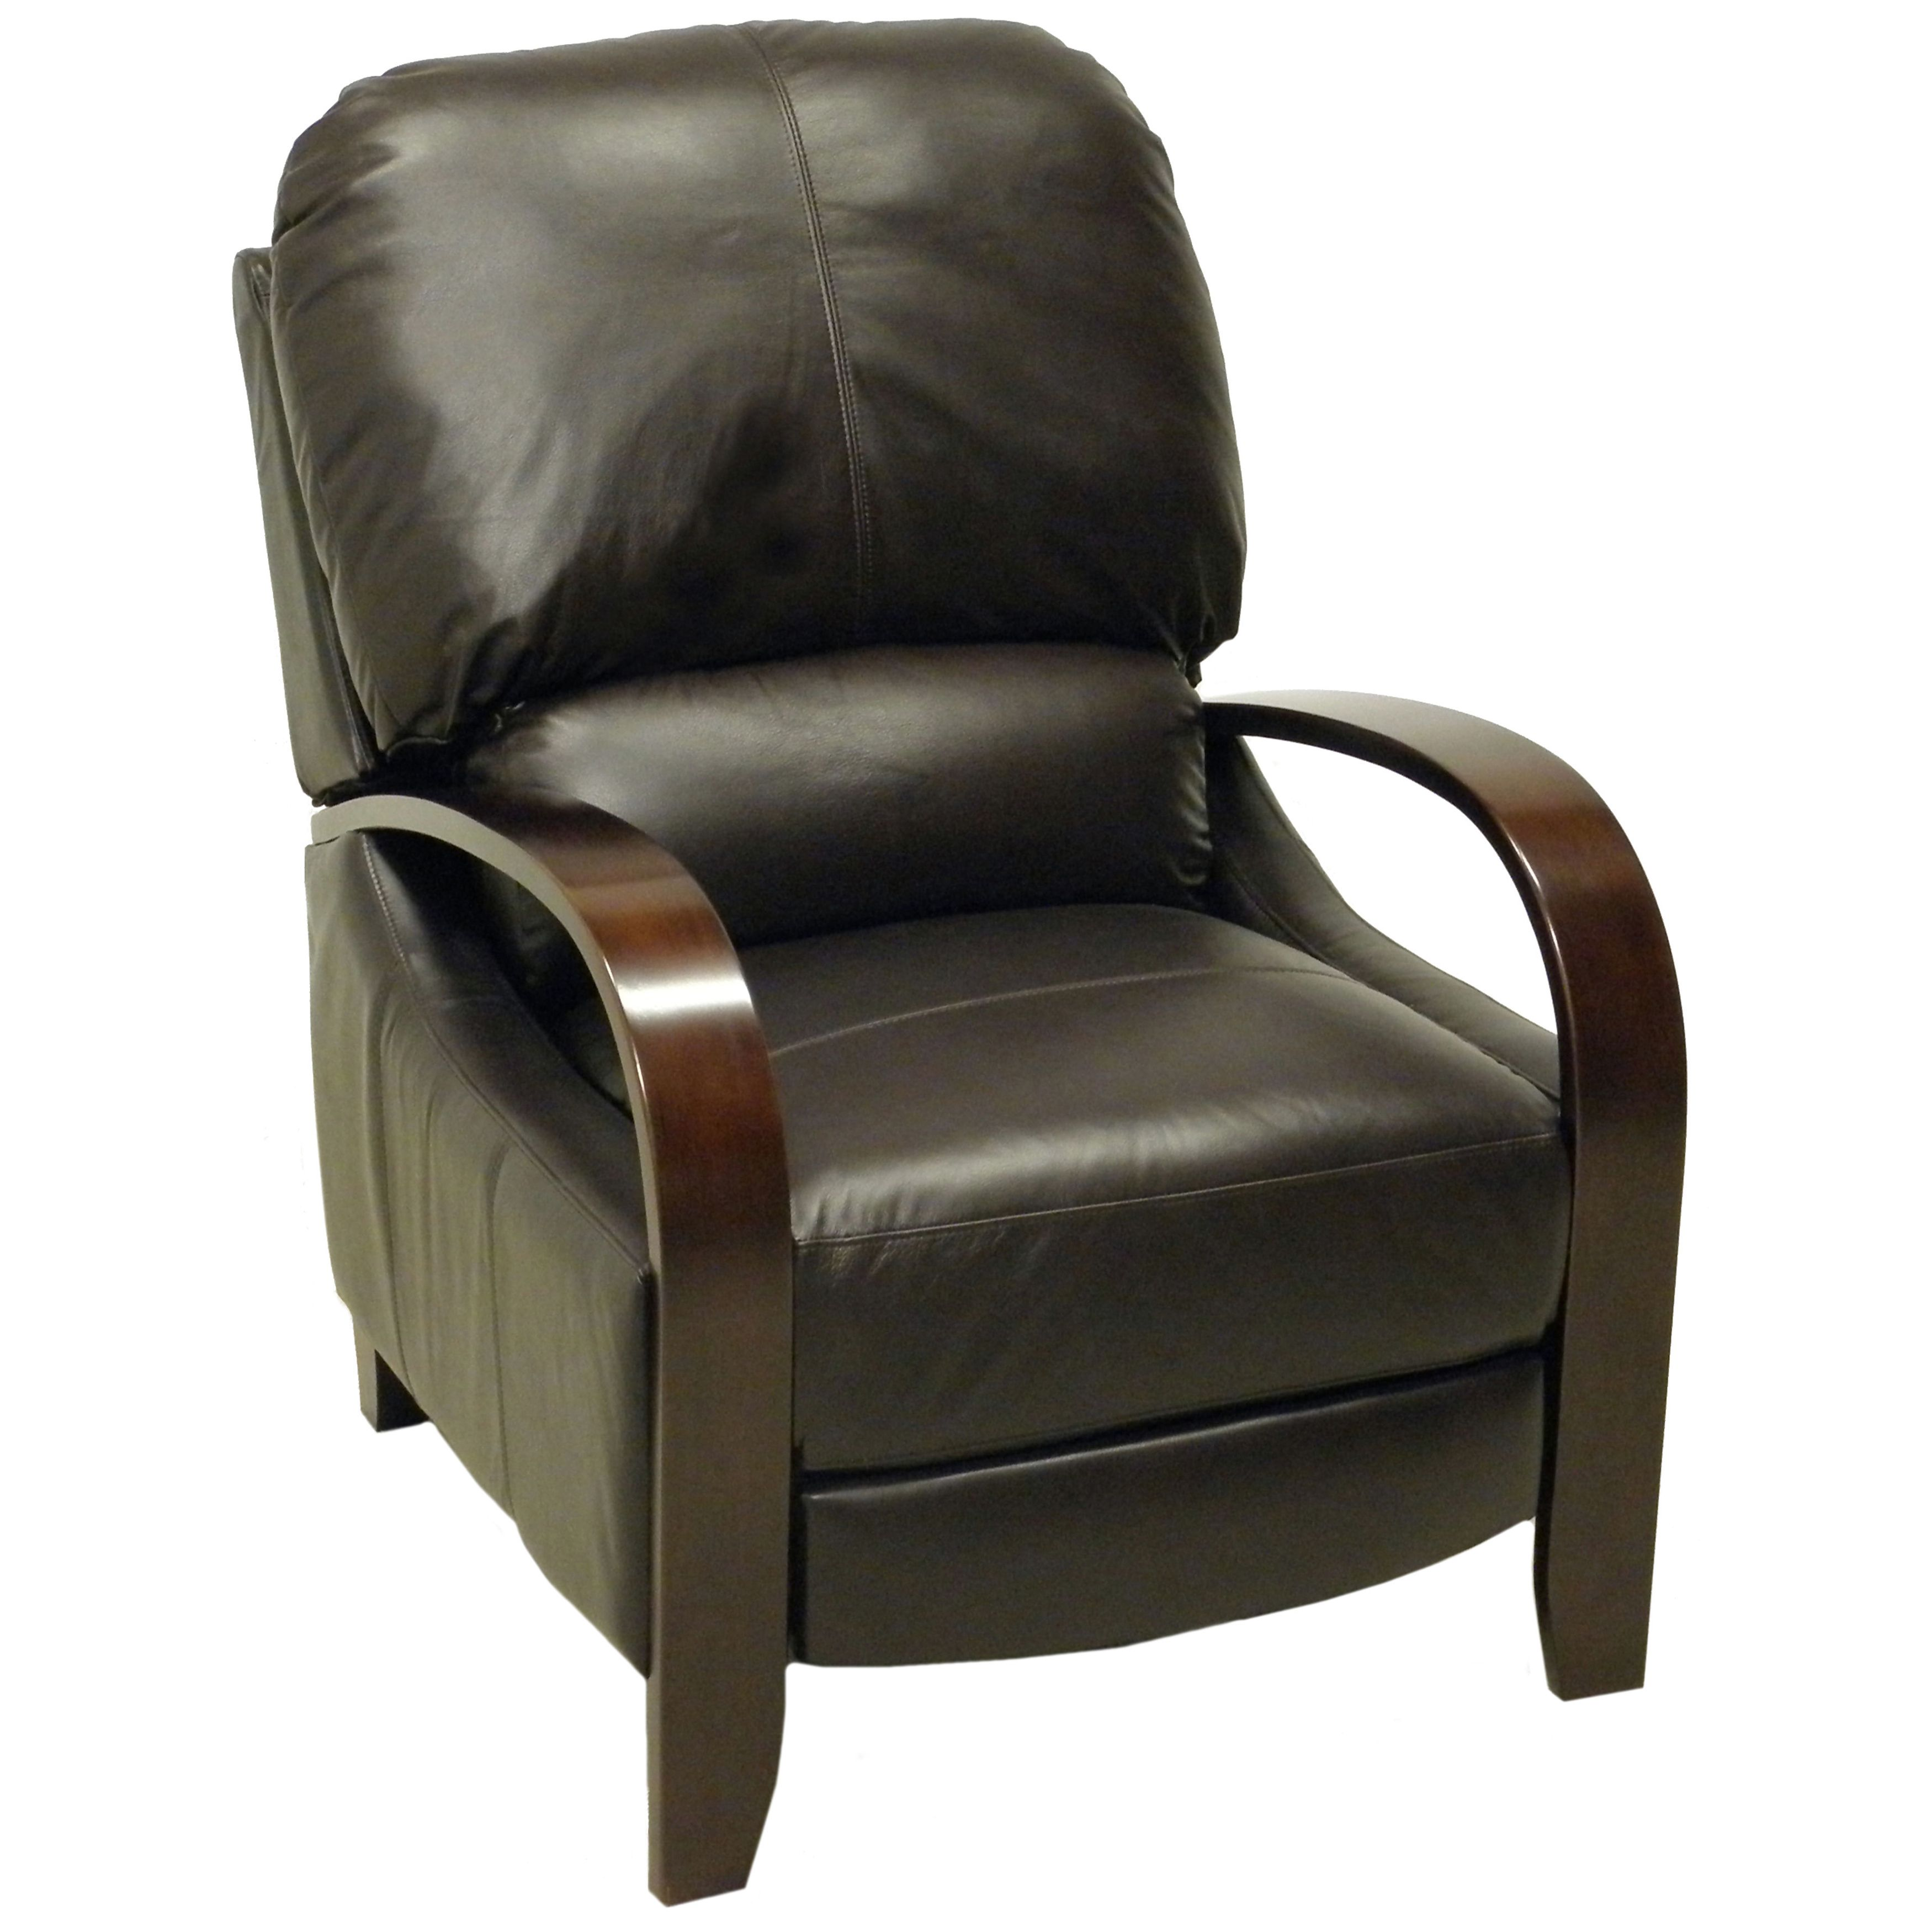 cost best palliser buy blue small size chair leather full push on grey back recliners slim linen recliner sale of prices